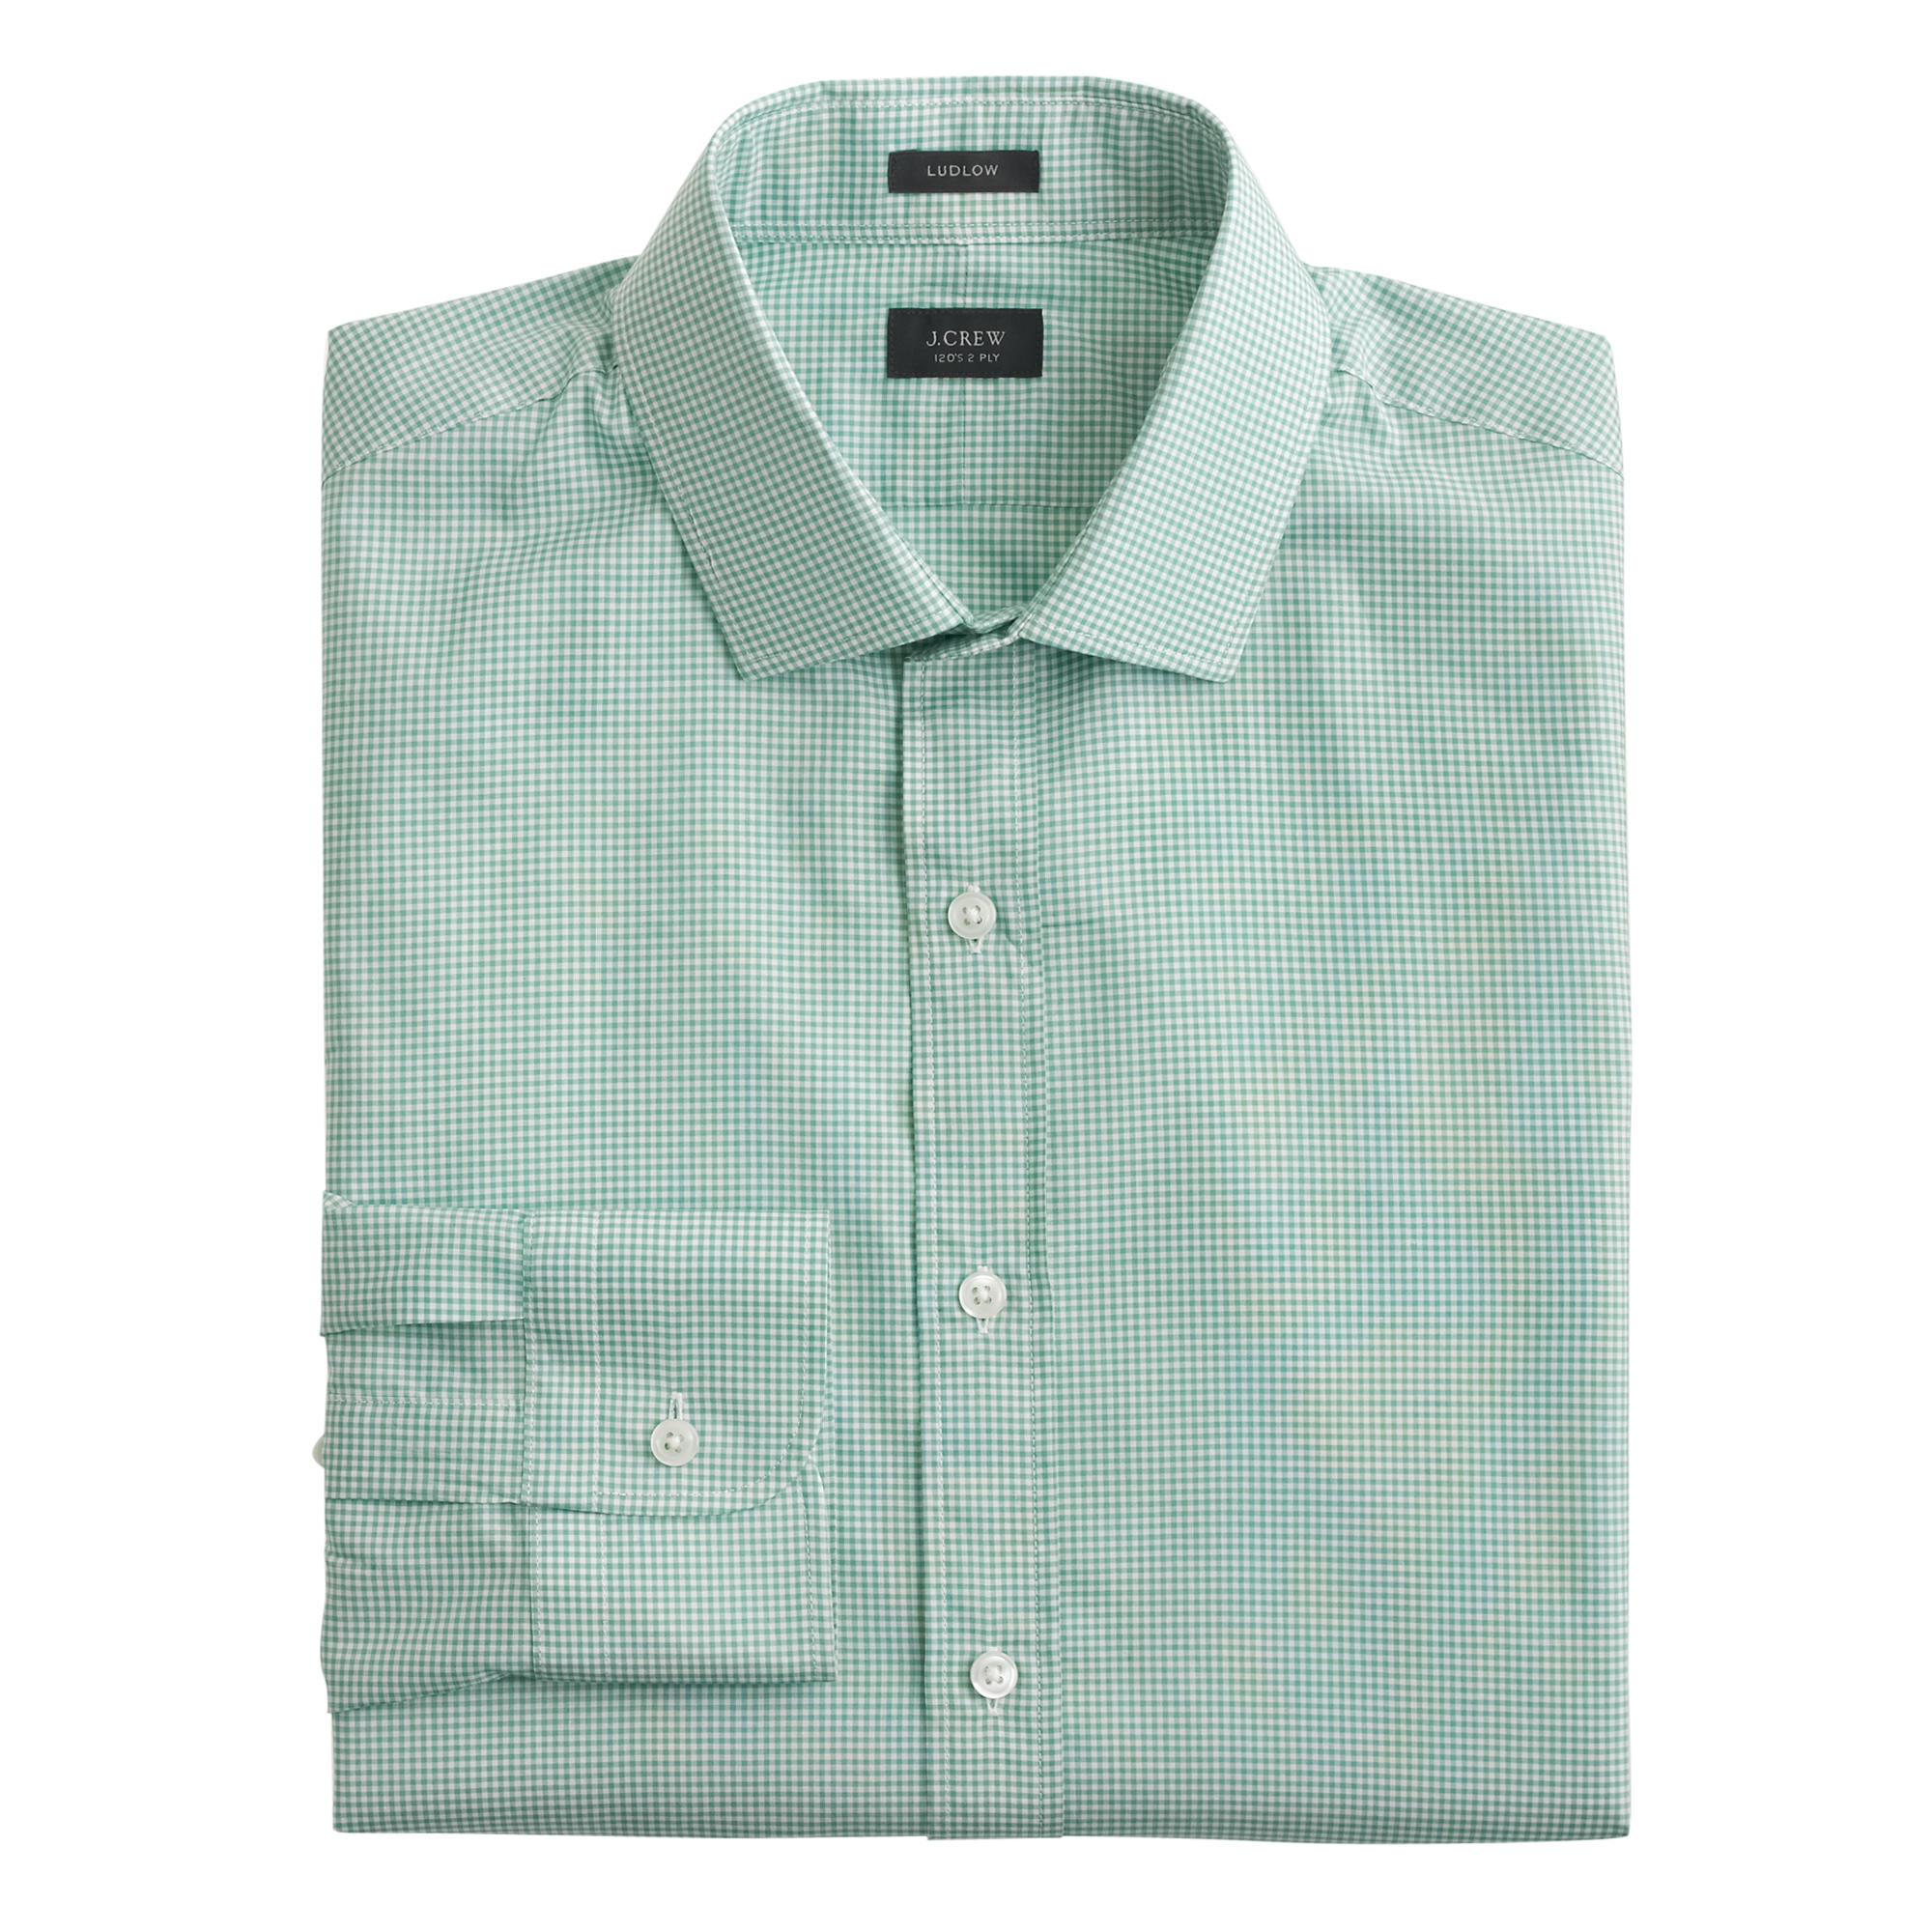 Lyst j crew ludlow shirt in gingham in green for men for Mens green gingham dress shirt